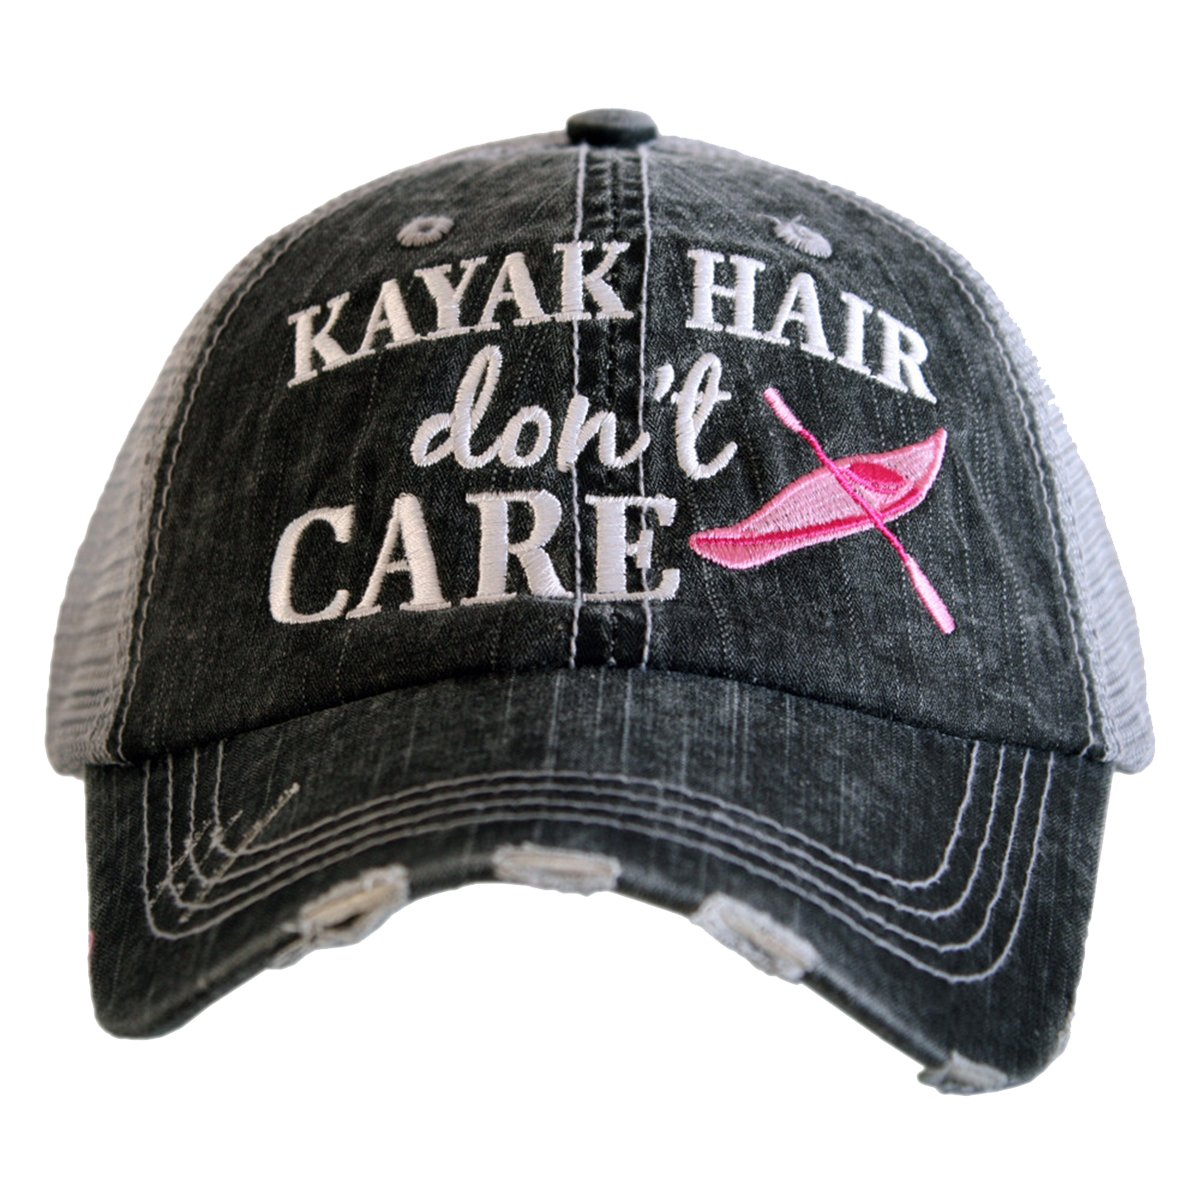 Katydid Kayak Hair Don't Care Women's Trucker Hat-Gray/hot Pink